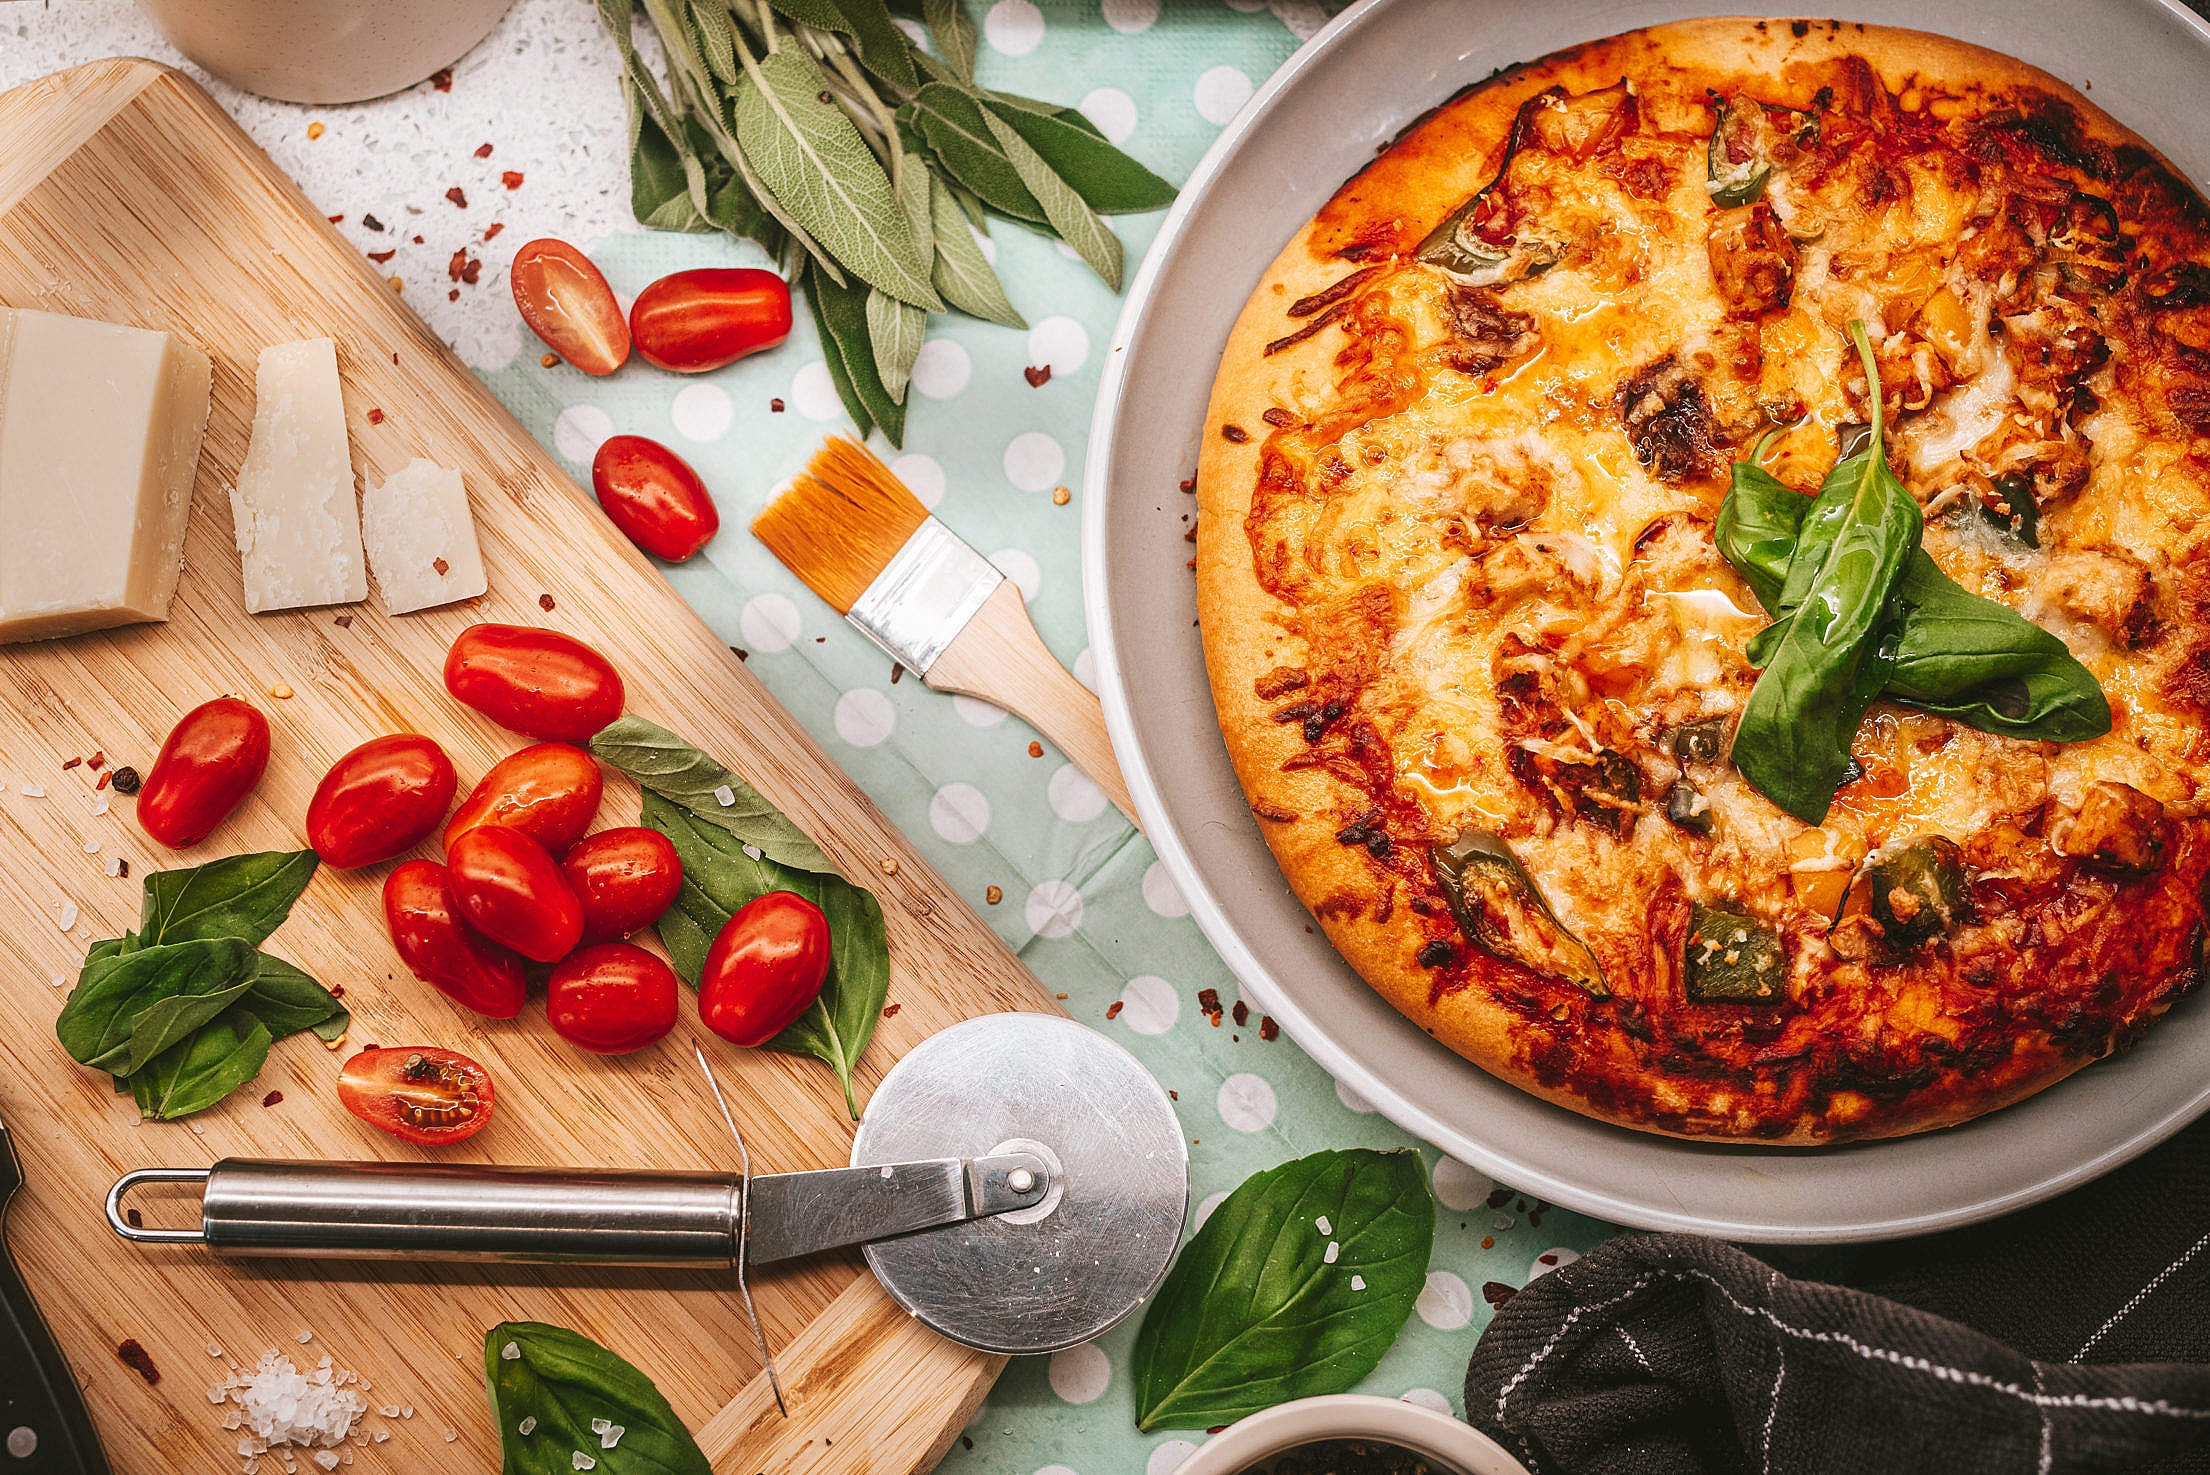 Homemade Pizza with Quality Ingredients Free Stock Photo